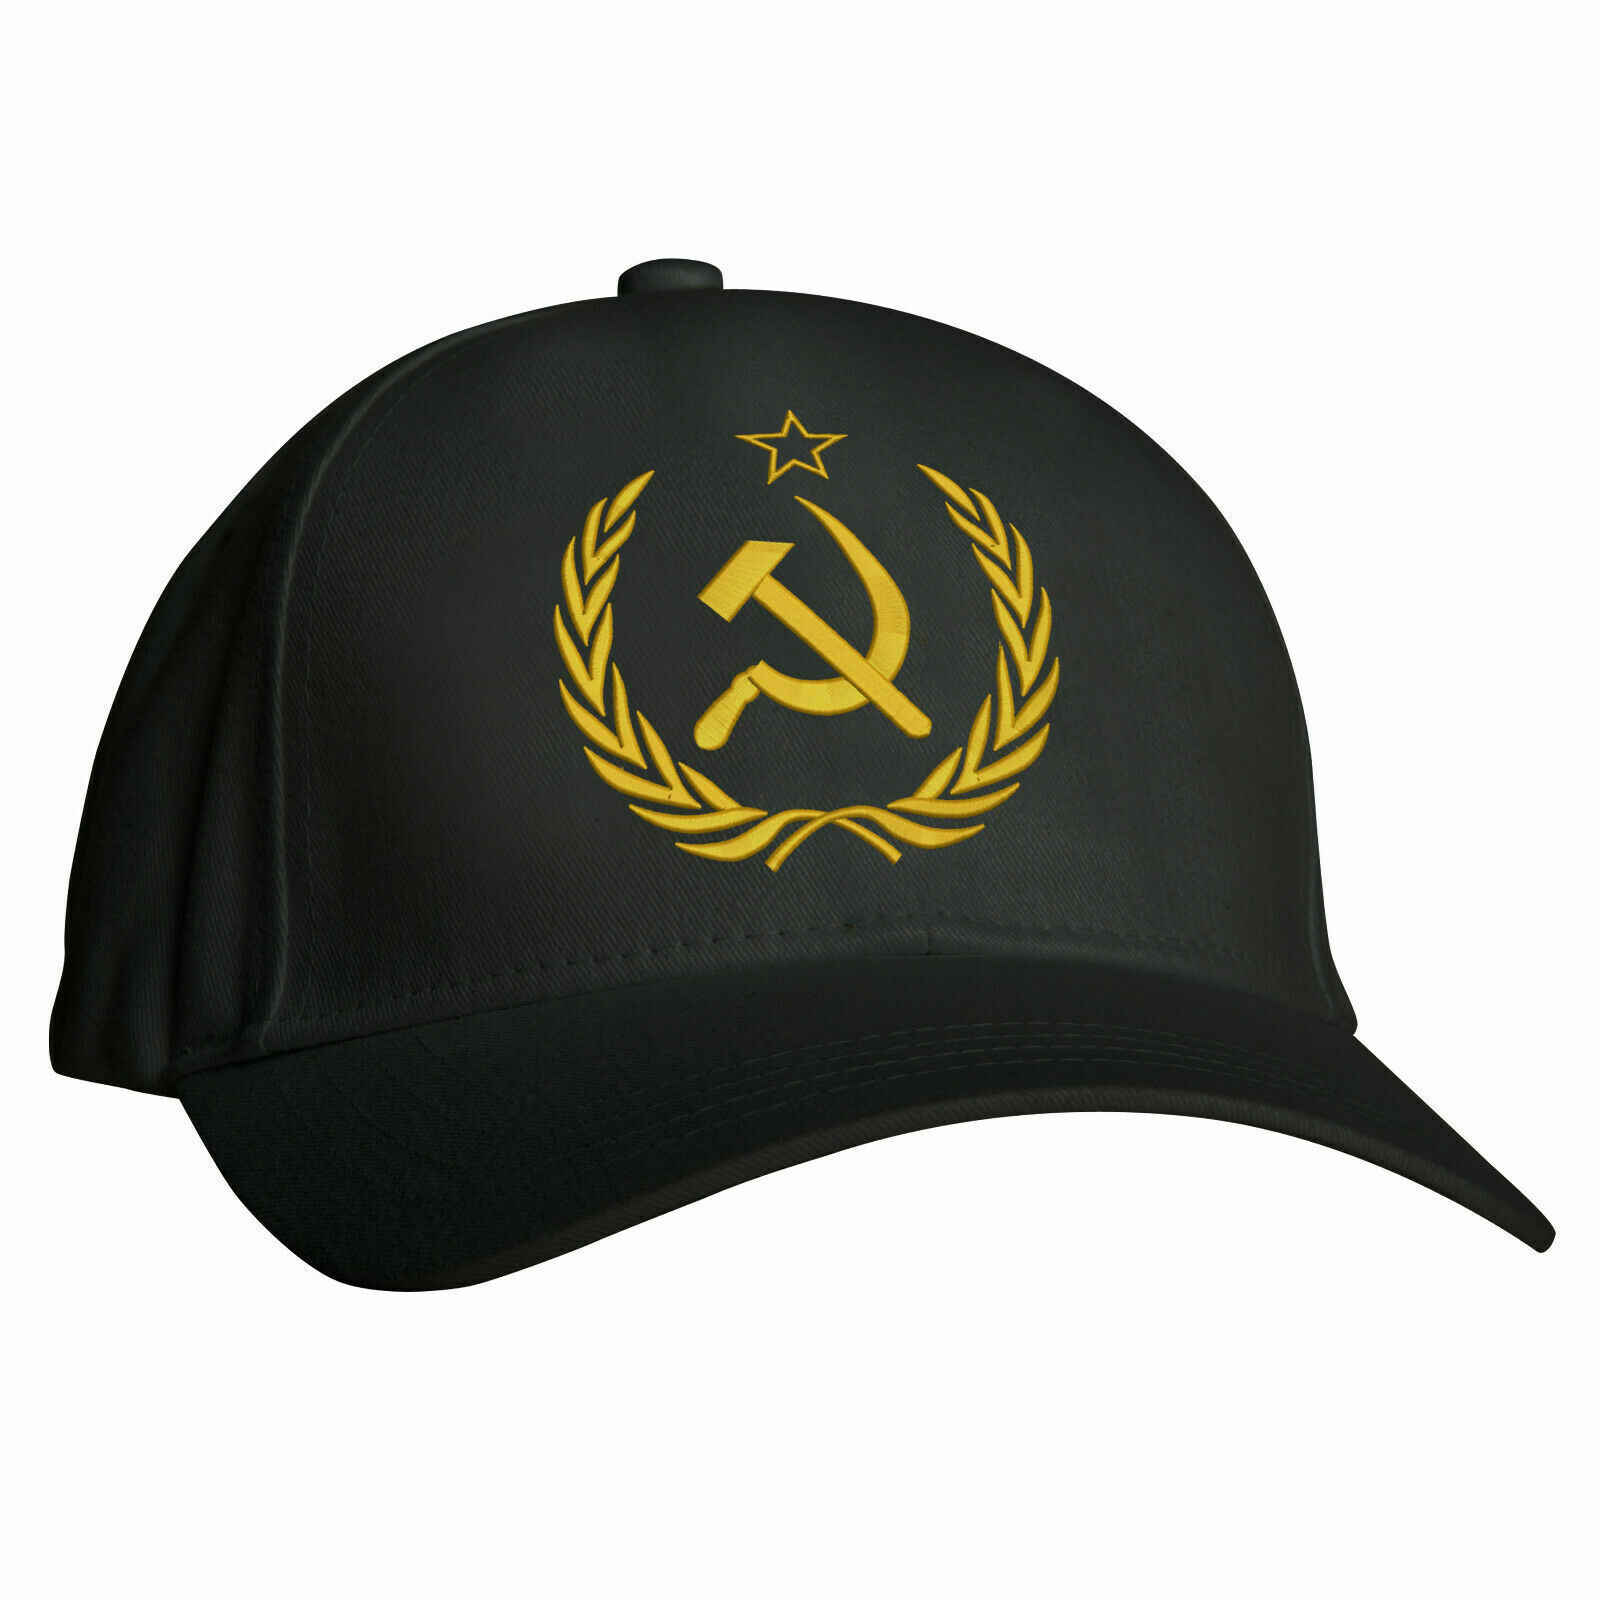 Ussr Logo Embroidered Baseball, Soviet CCCP Russia Vintage Workwear Hat